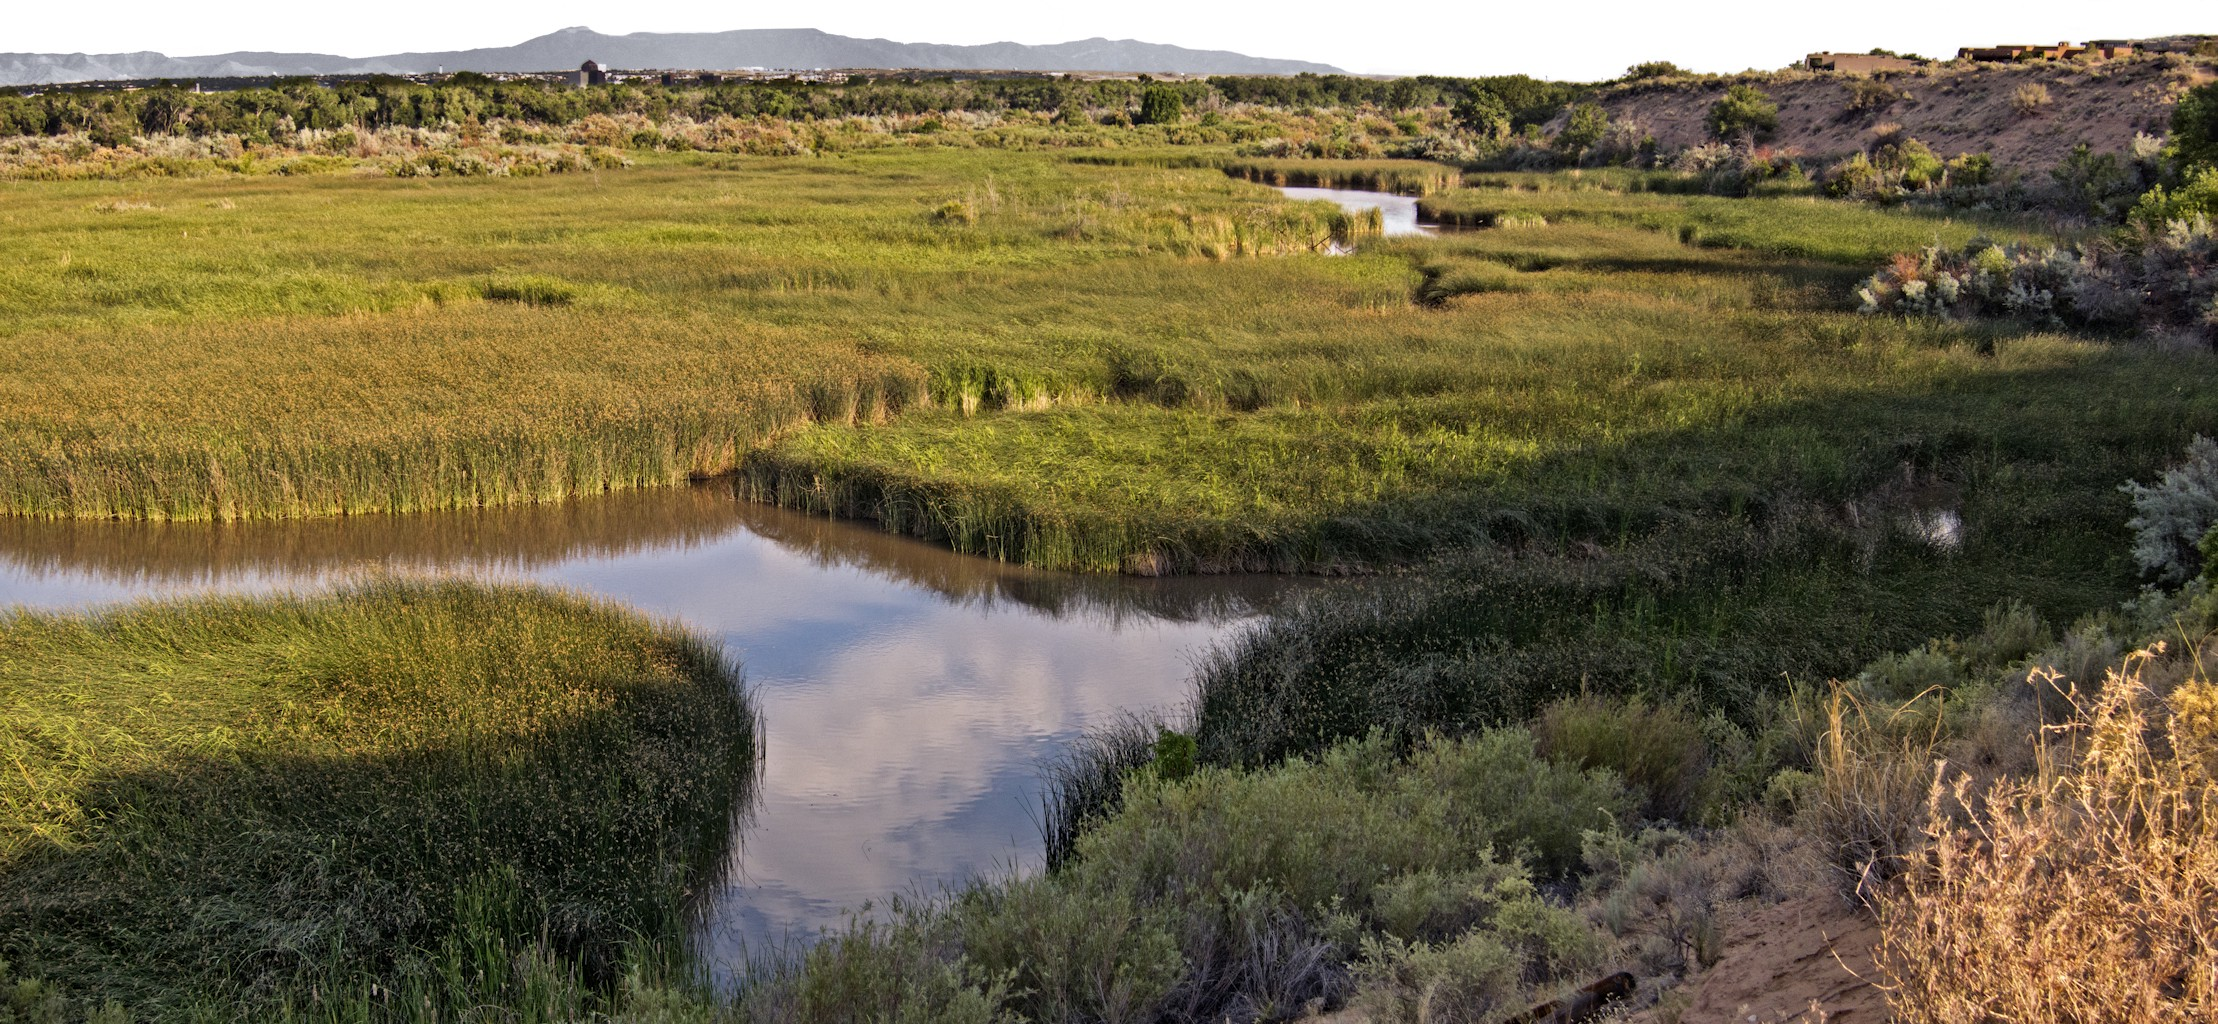 The San Antonio Oxbow wetland, looking south from the bluff.